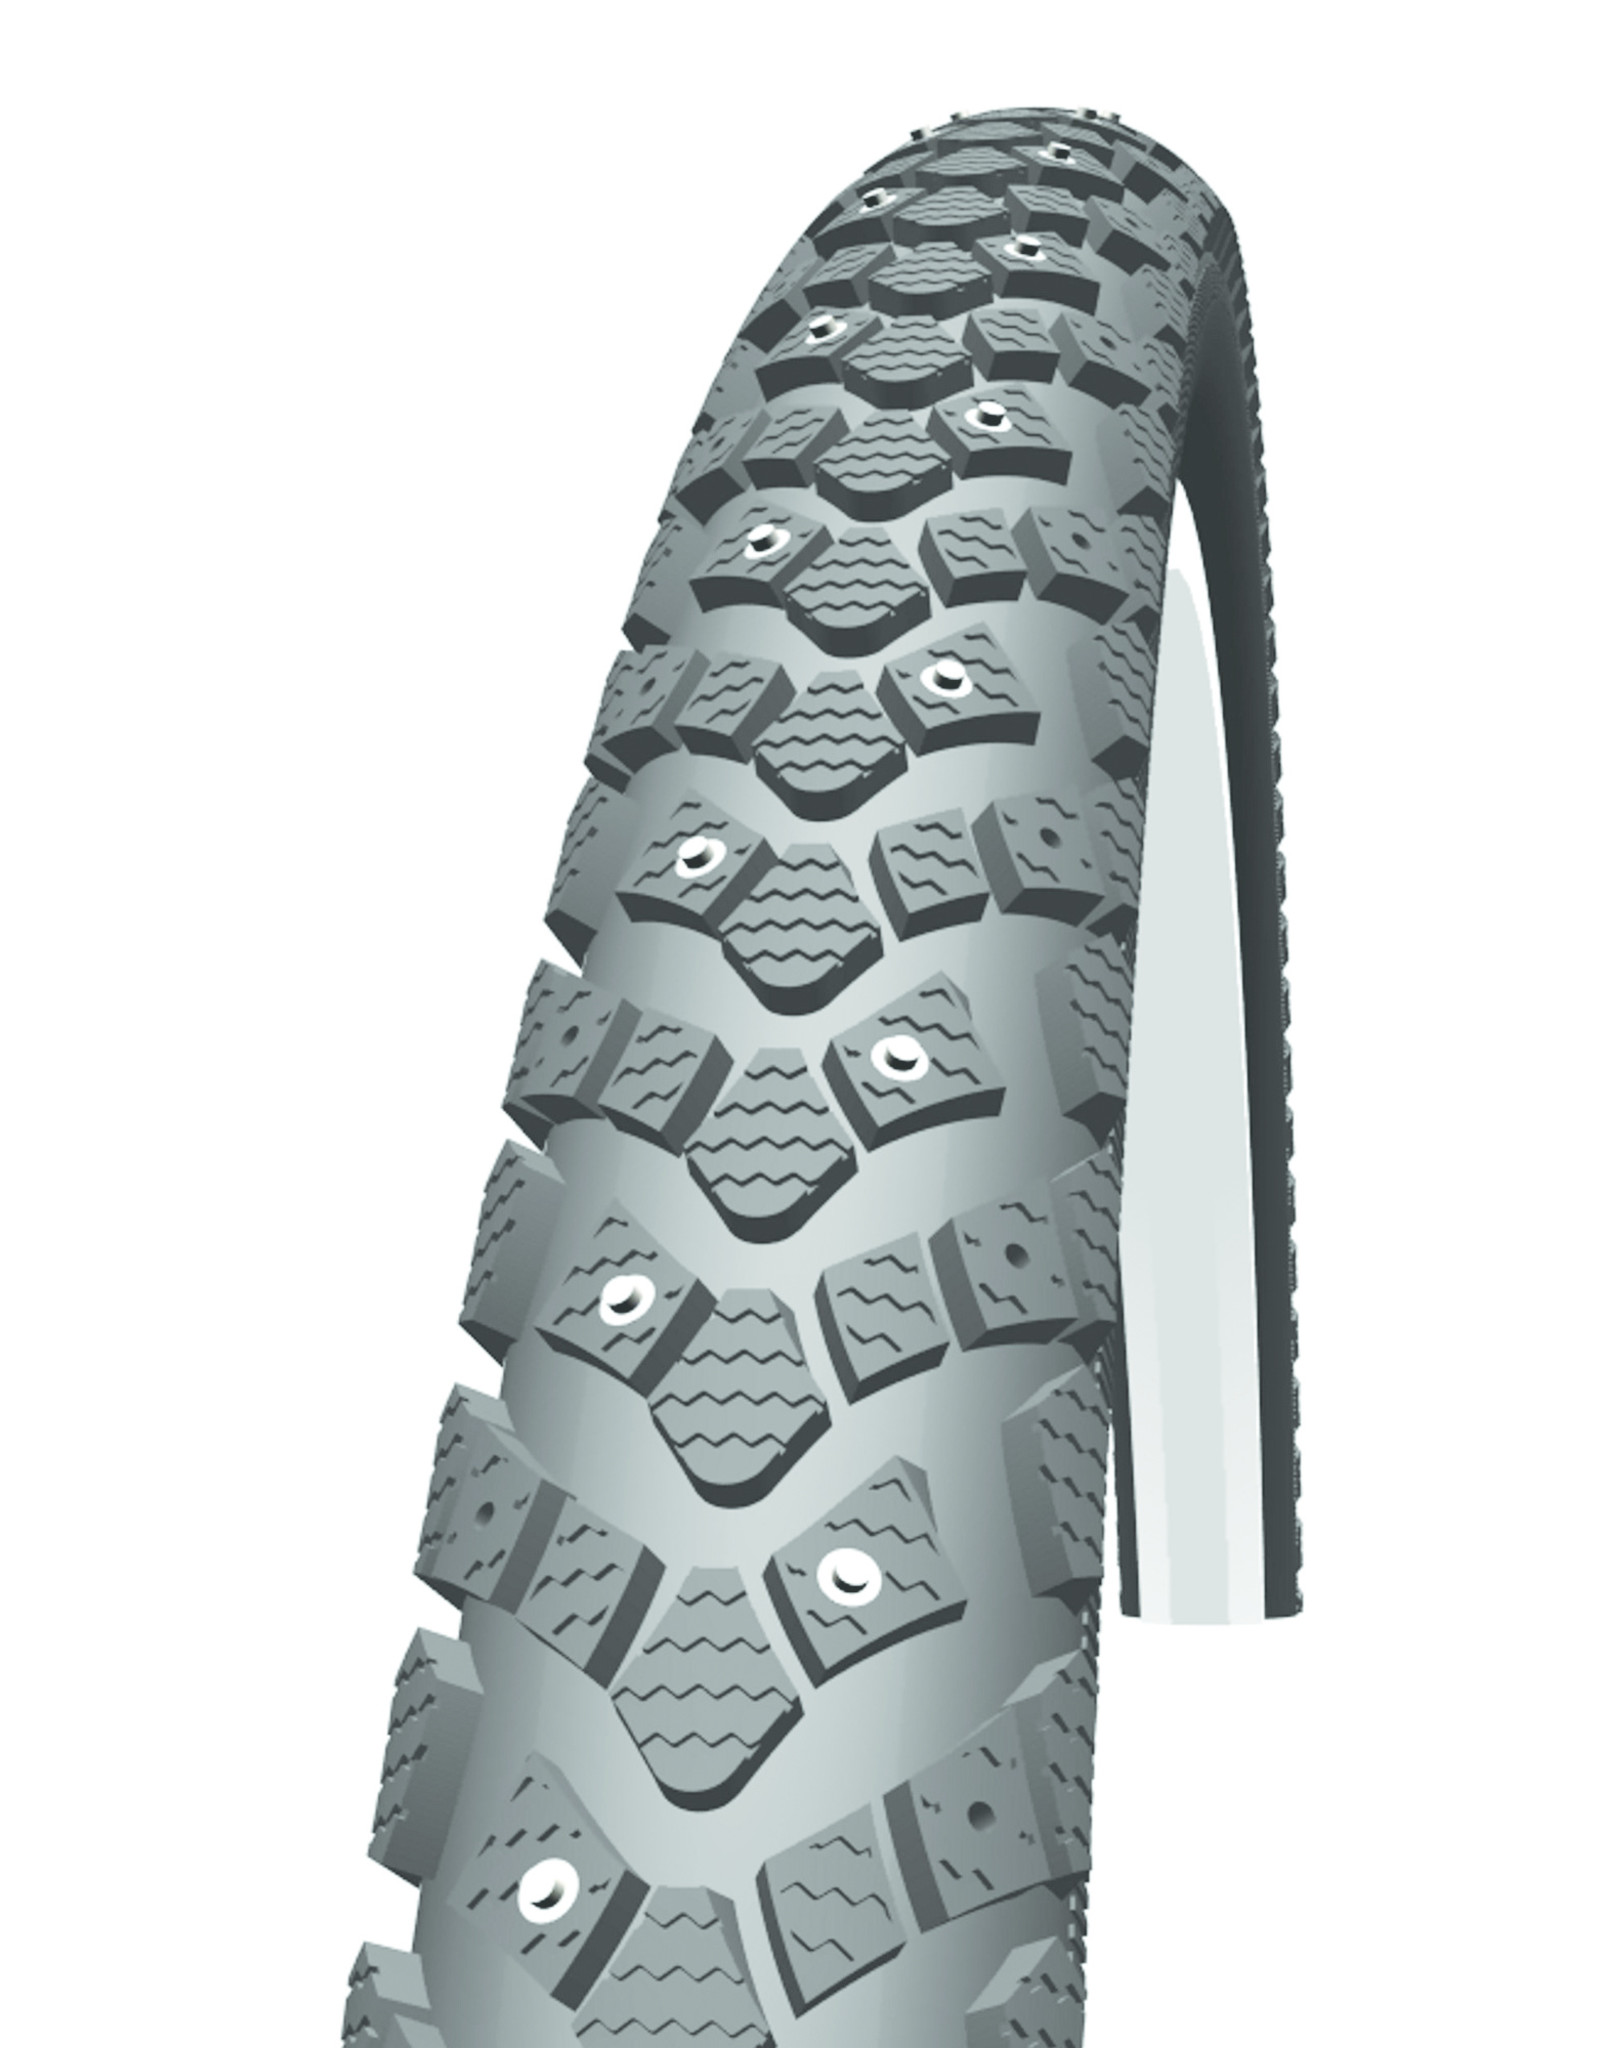 Schwalbe Schwalbe, Winter, Pneu, 700x35C, Rigide, Tringle, Winter, KevlarGuard, Reflex, 50TPI, Noir